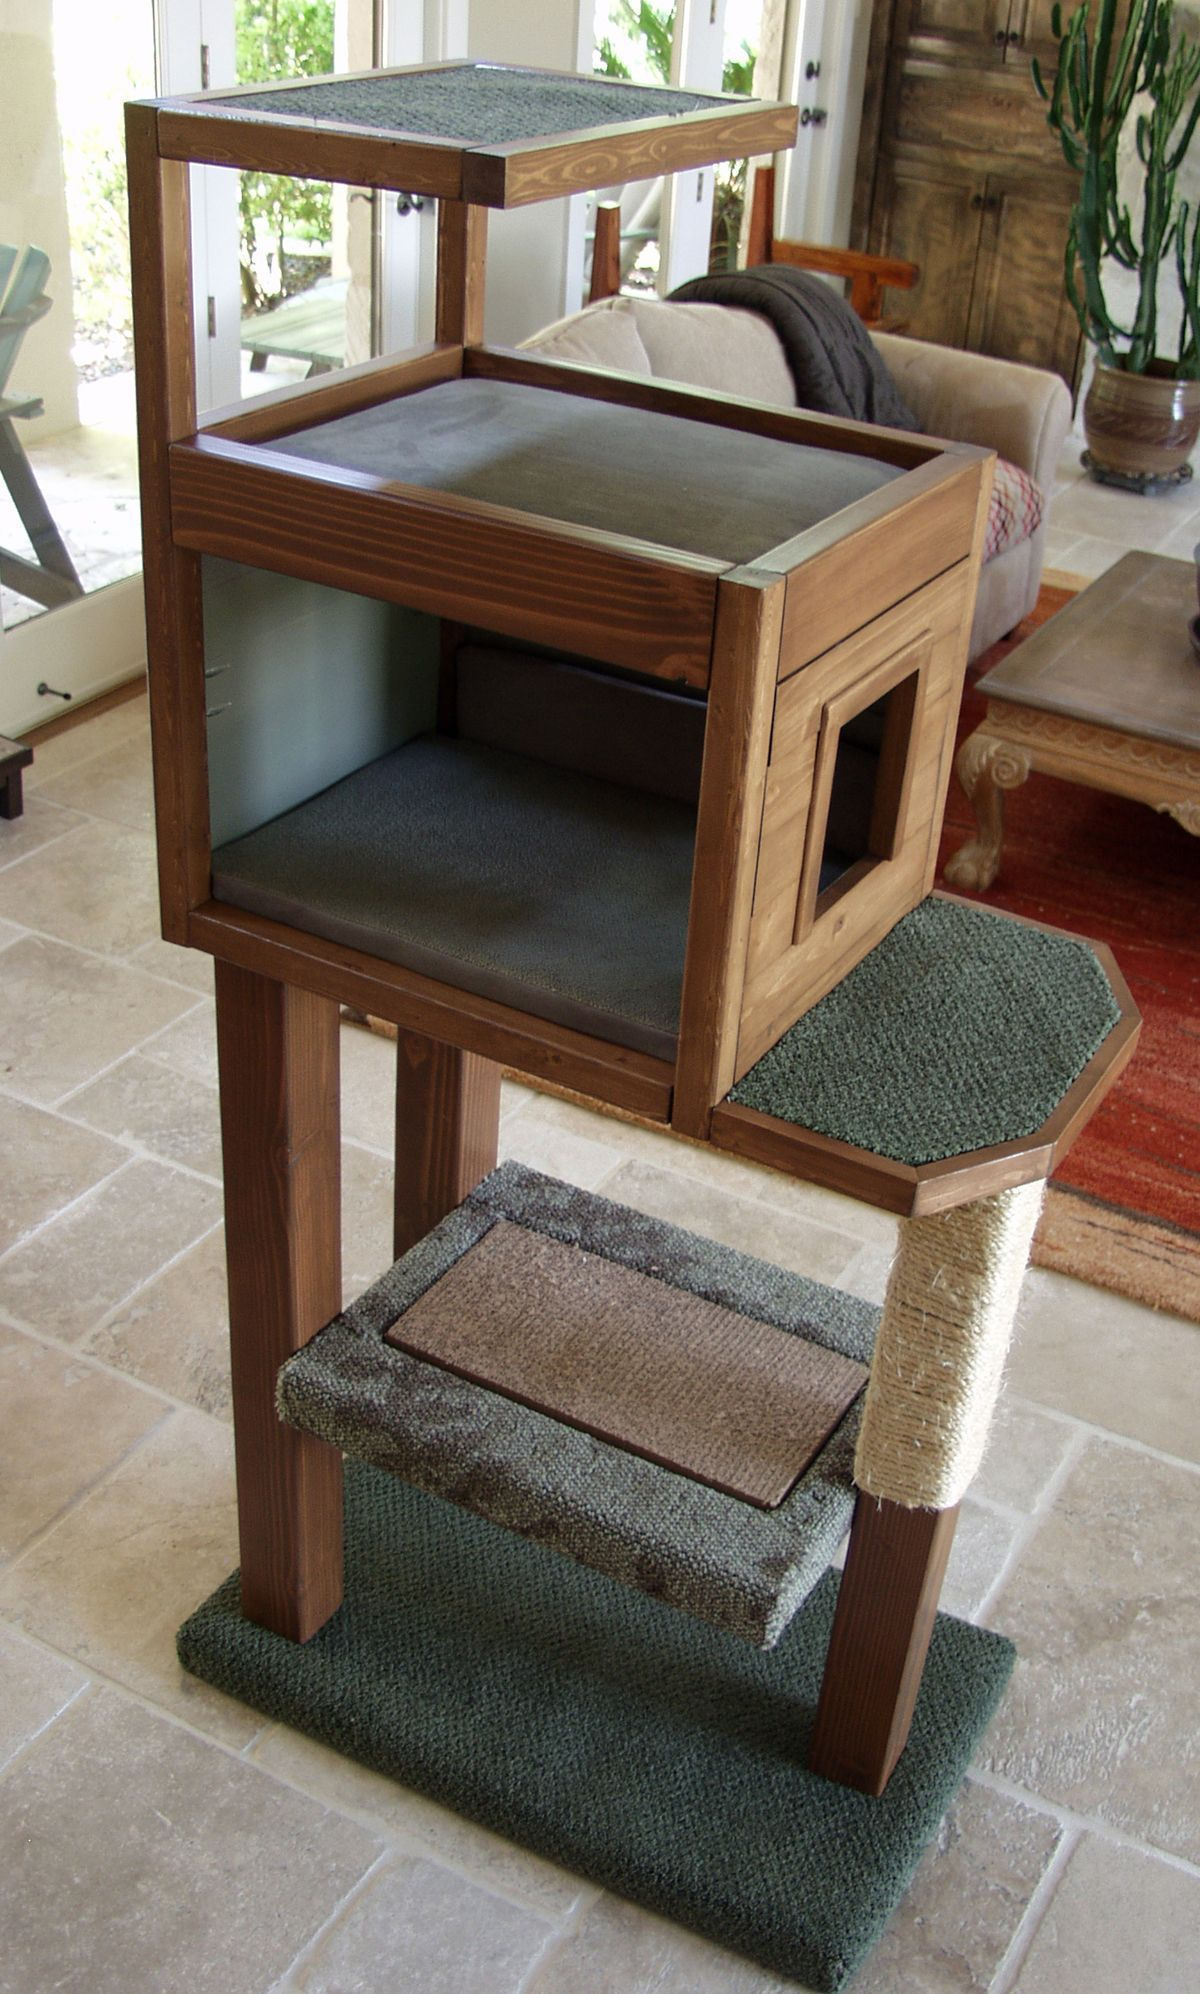 Diy cat tree condo check this useful article by going